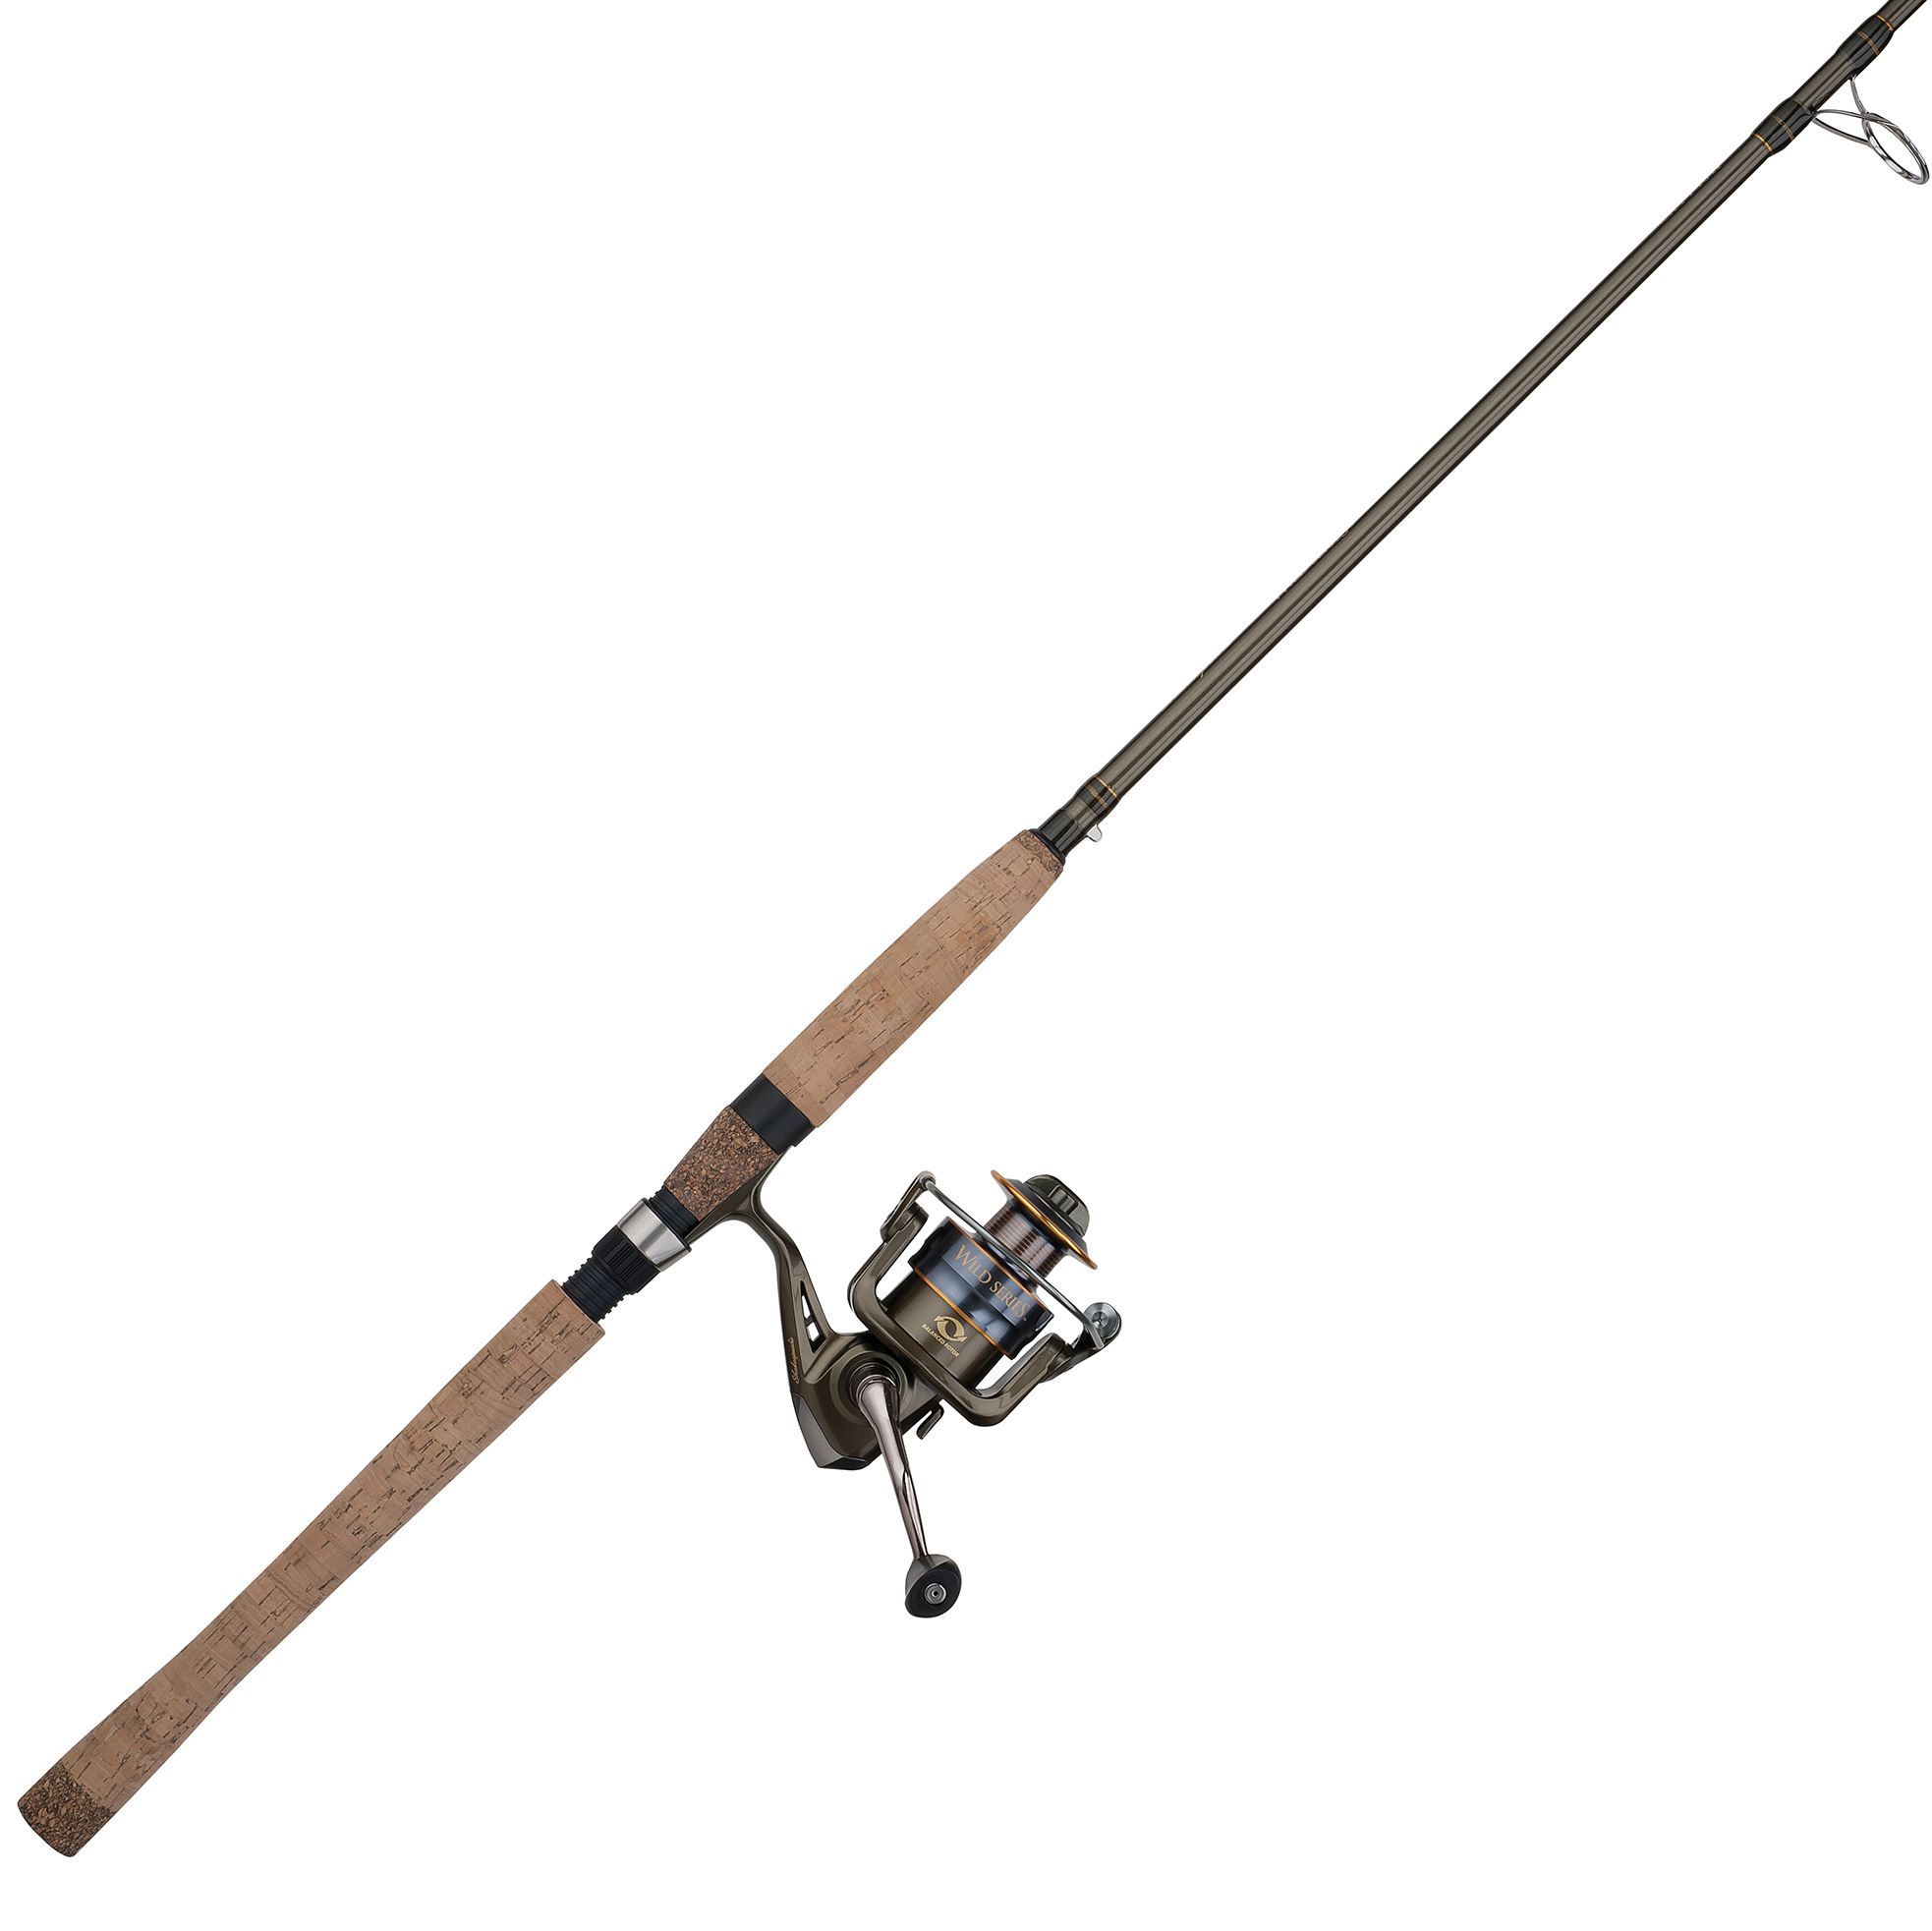 Shakespeare Wild Series Catfish Spinning Combo